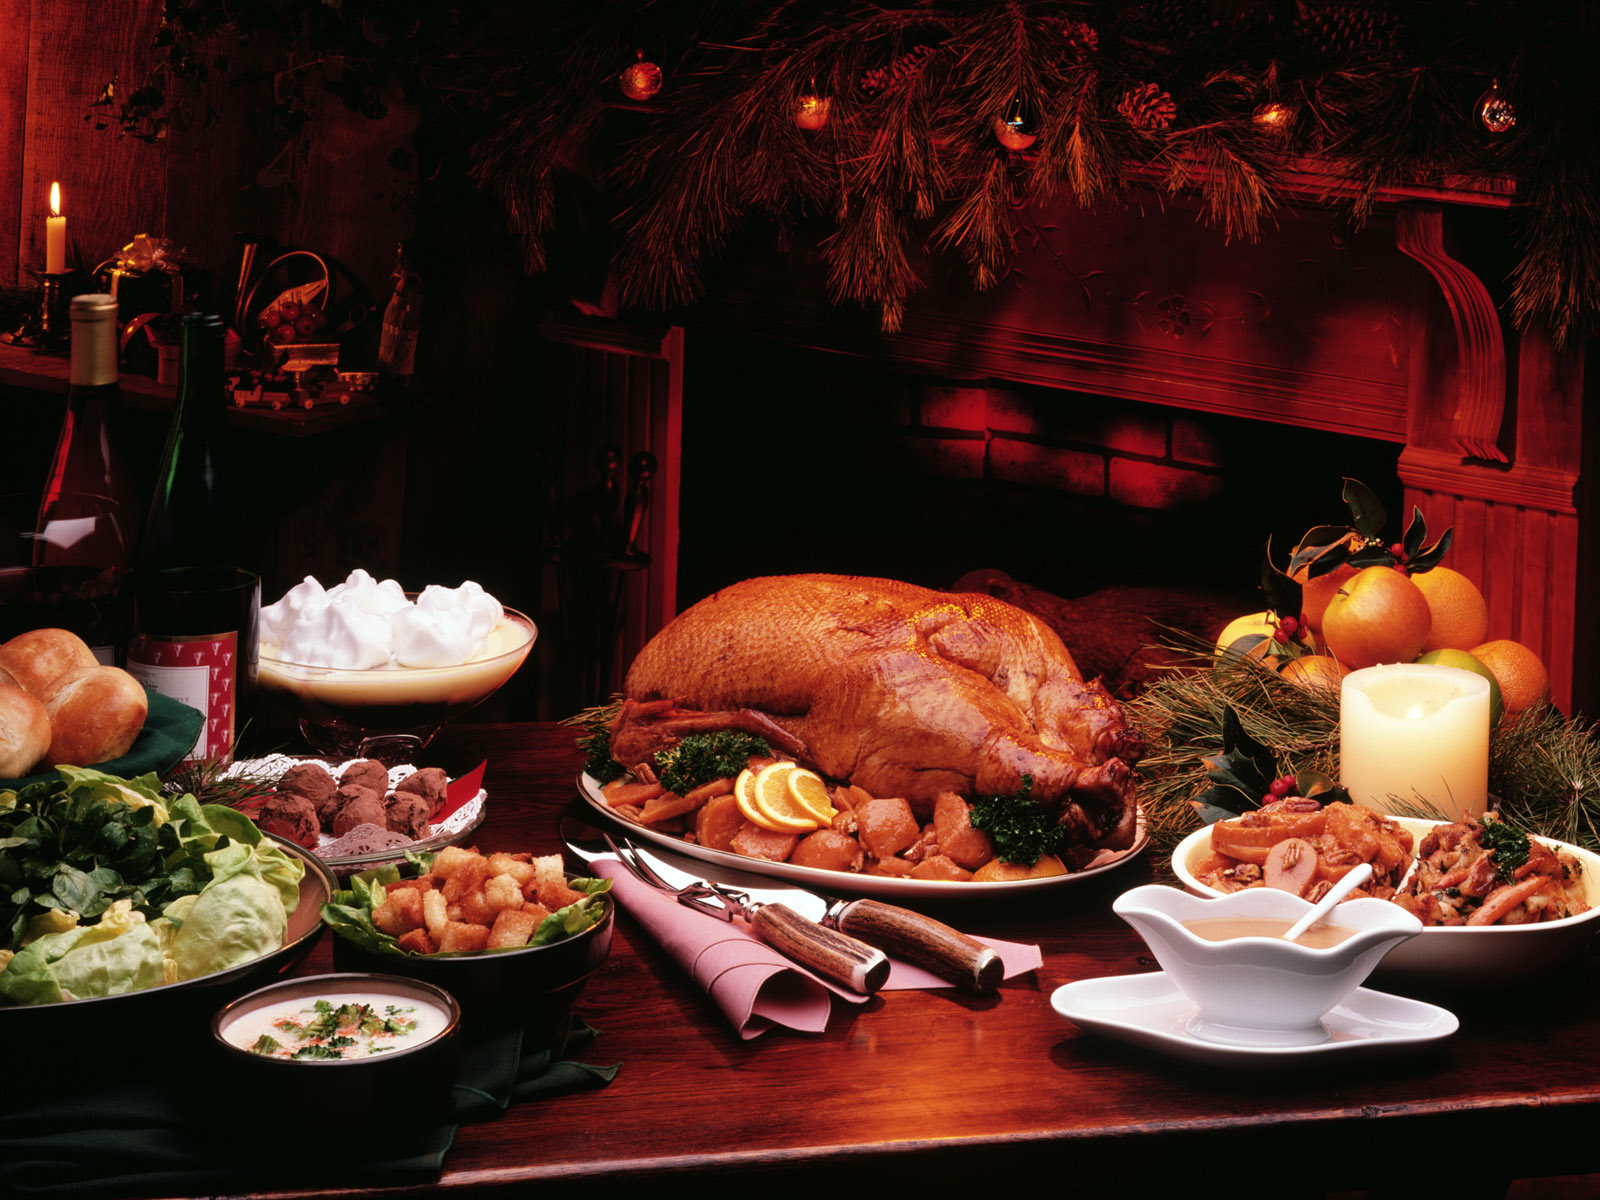 Holiday Thanksgiving Turkey Dinner Picture 2012 HD Wallpaper w 1600x1200